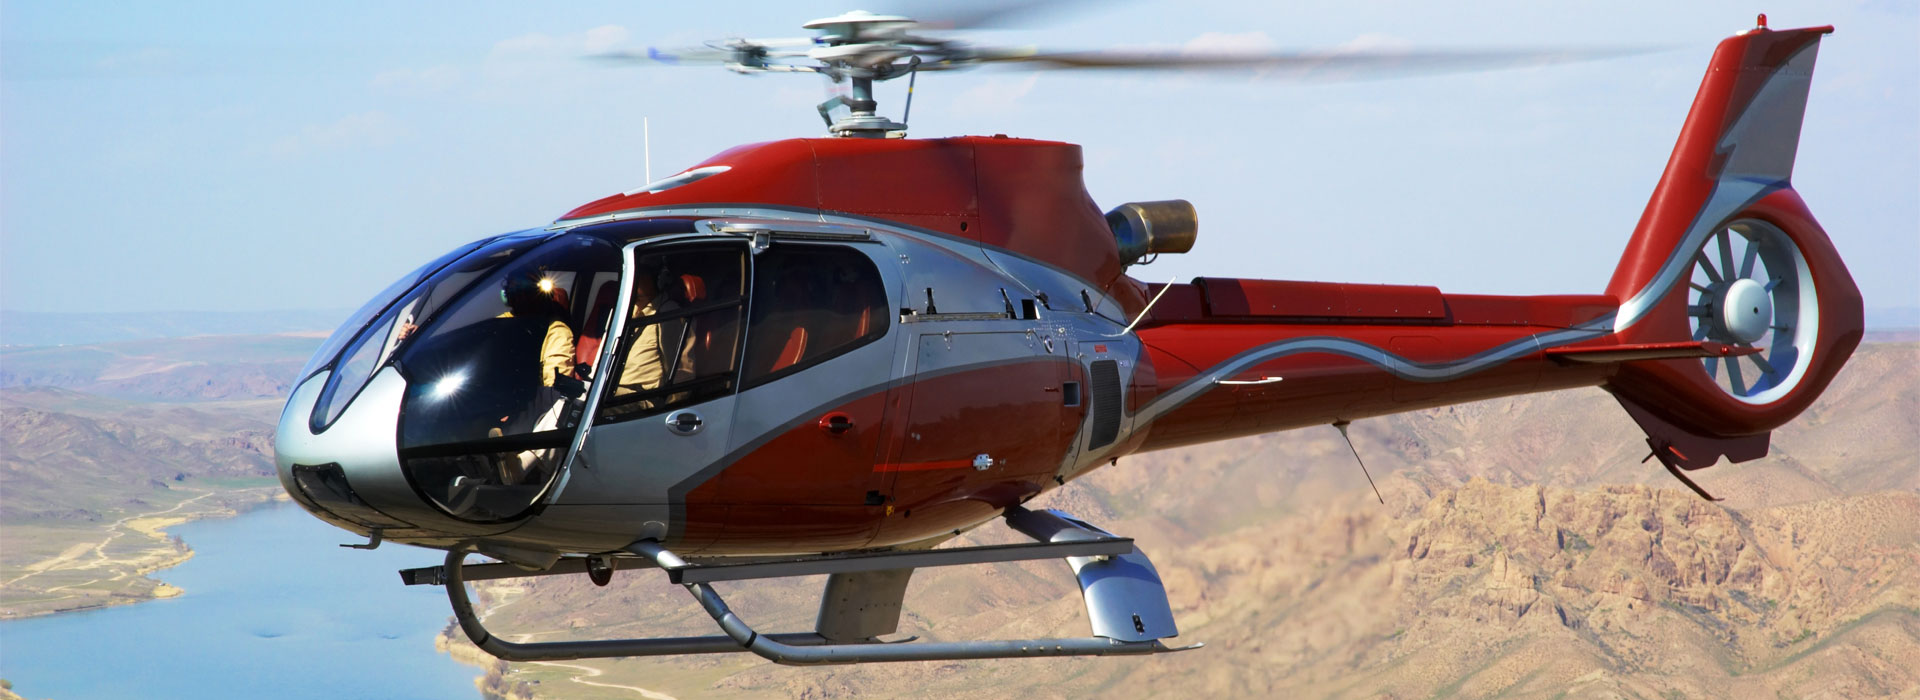 Use Helicopters for Aerial Surveys - FairLifts Helicopter ...